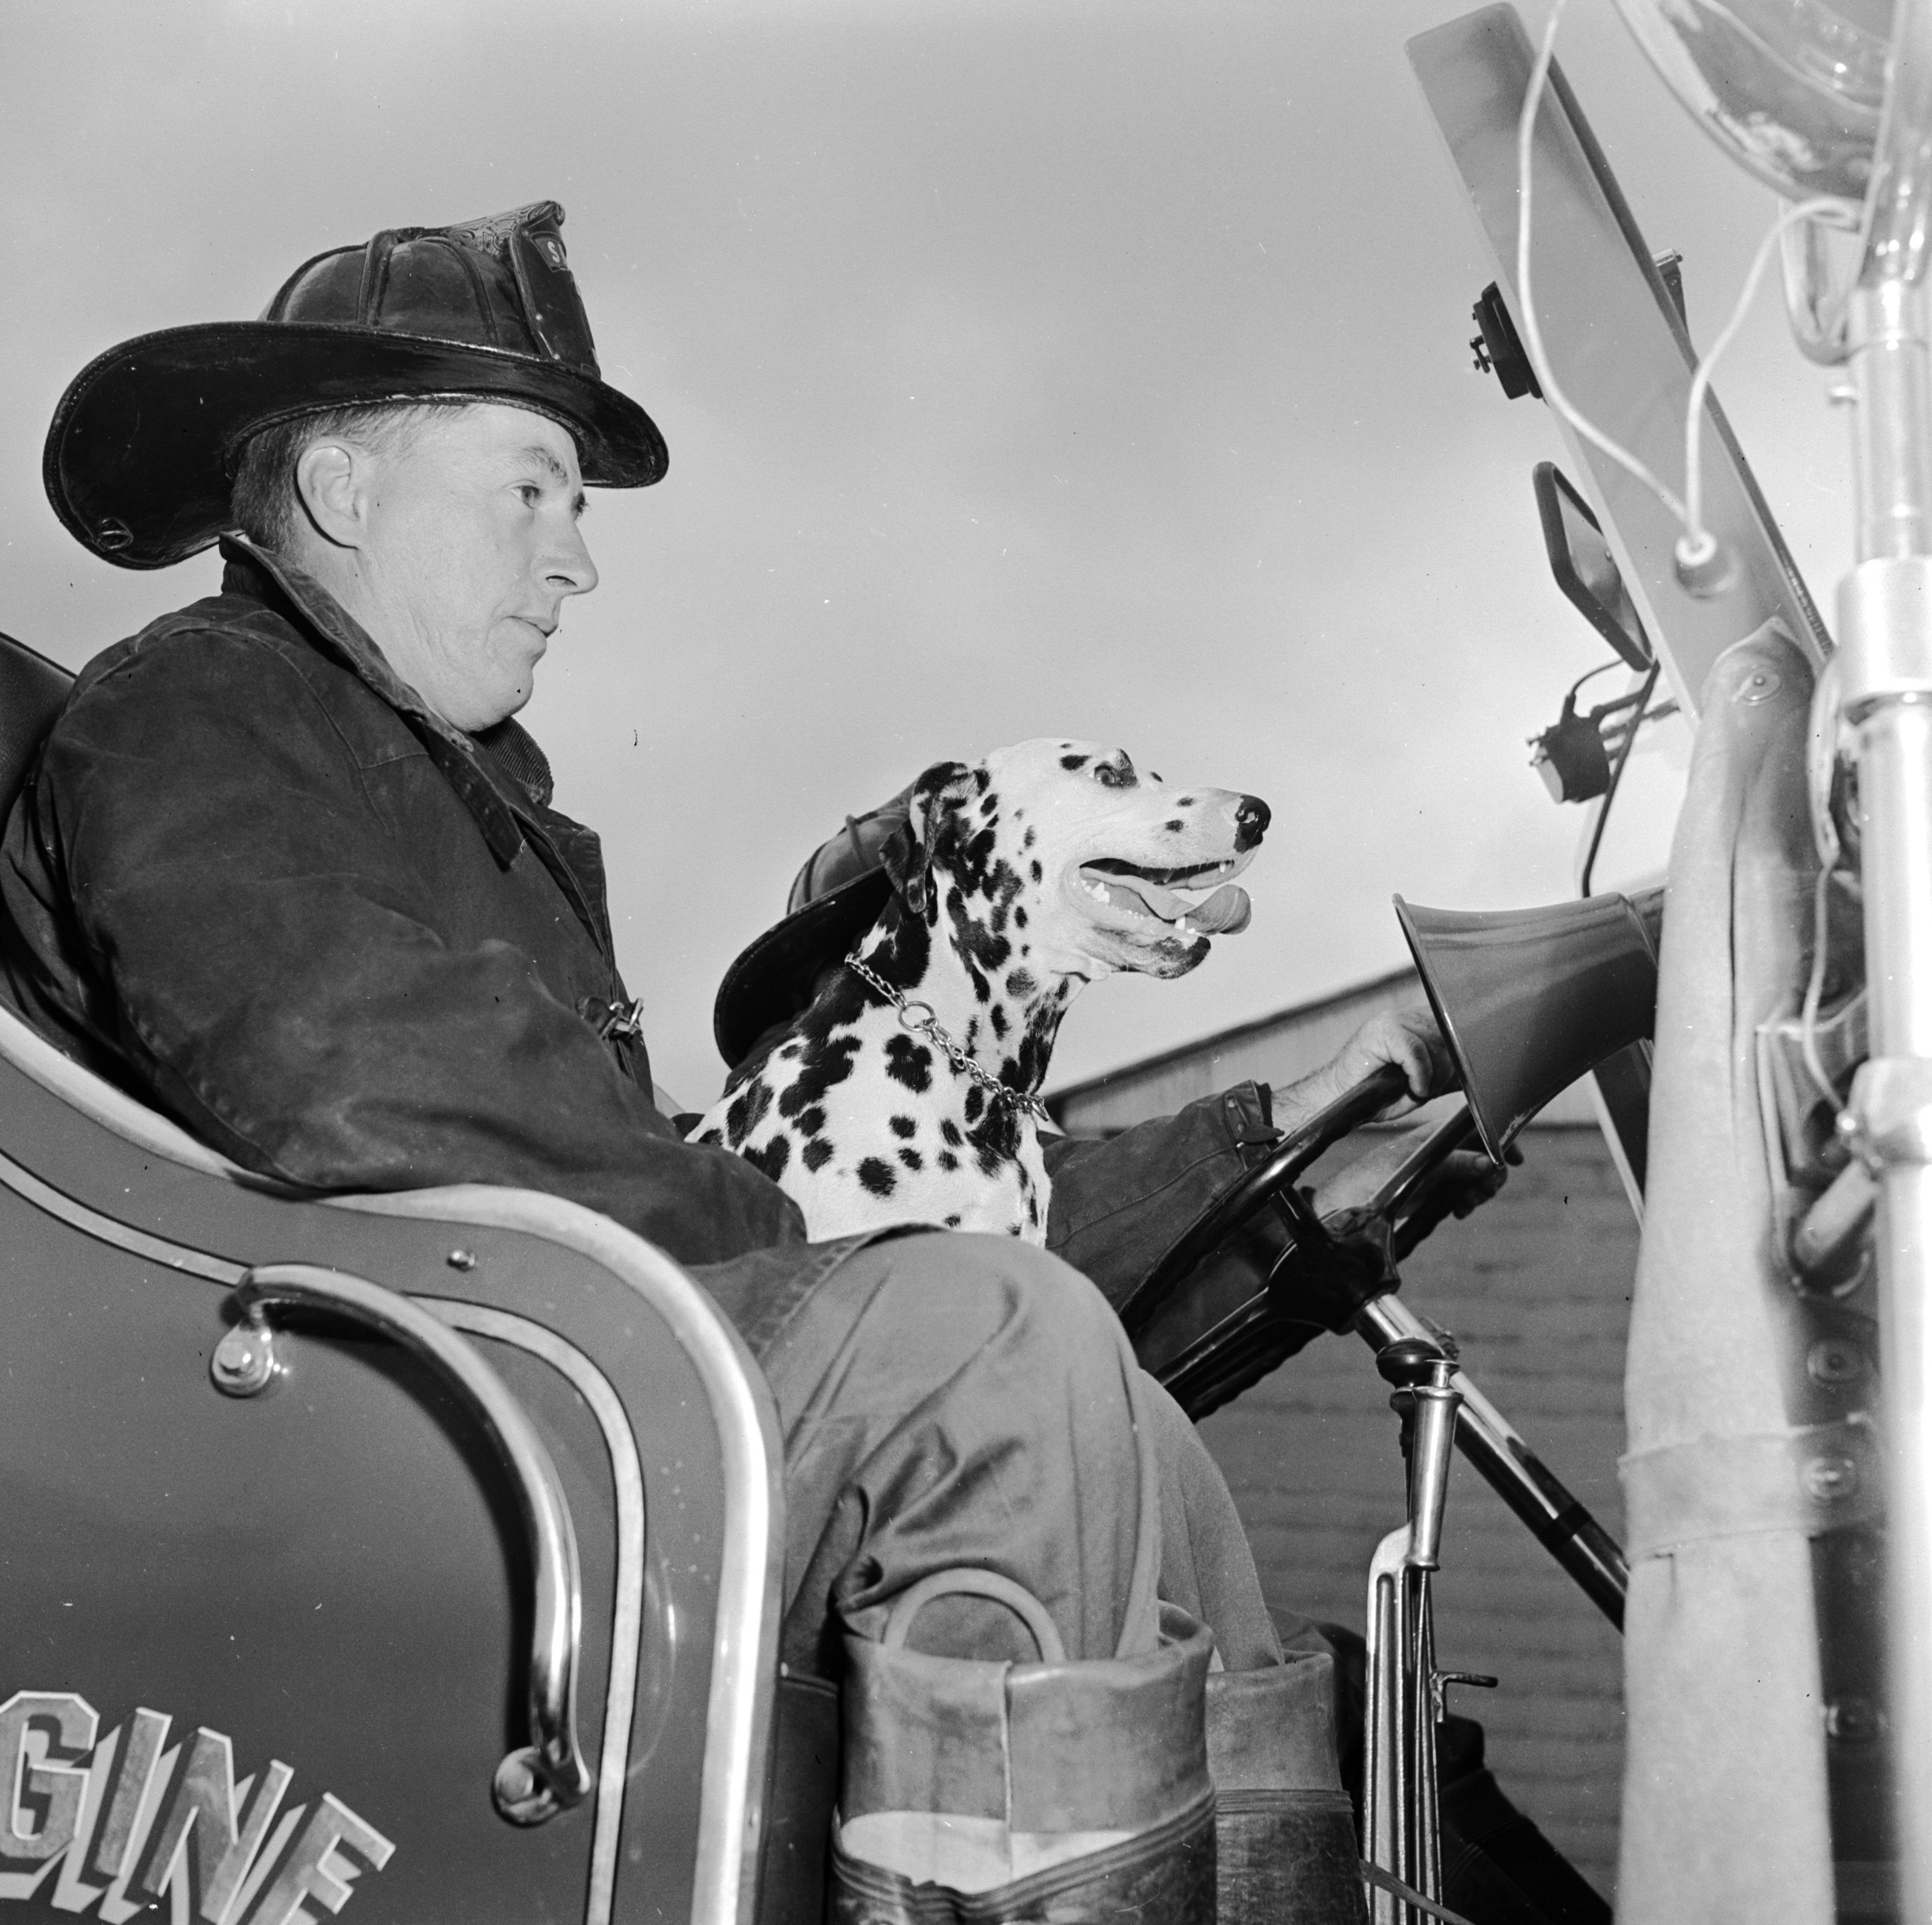 Spanner the dalmatian fire dog at the South Portland Fire Department, Cash Corner Station in the USA.